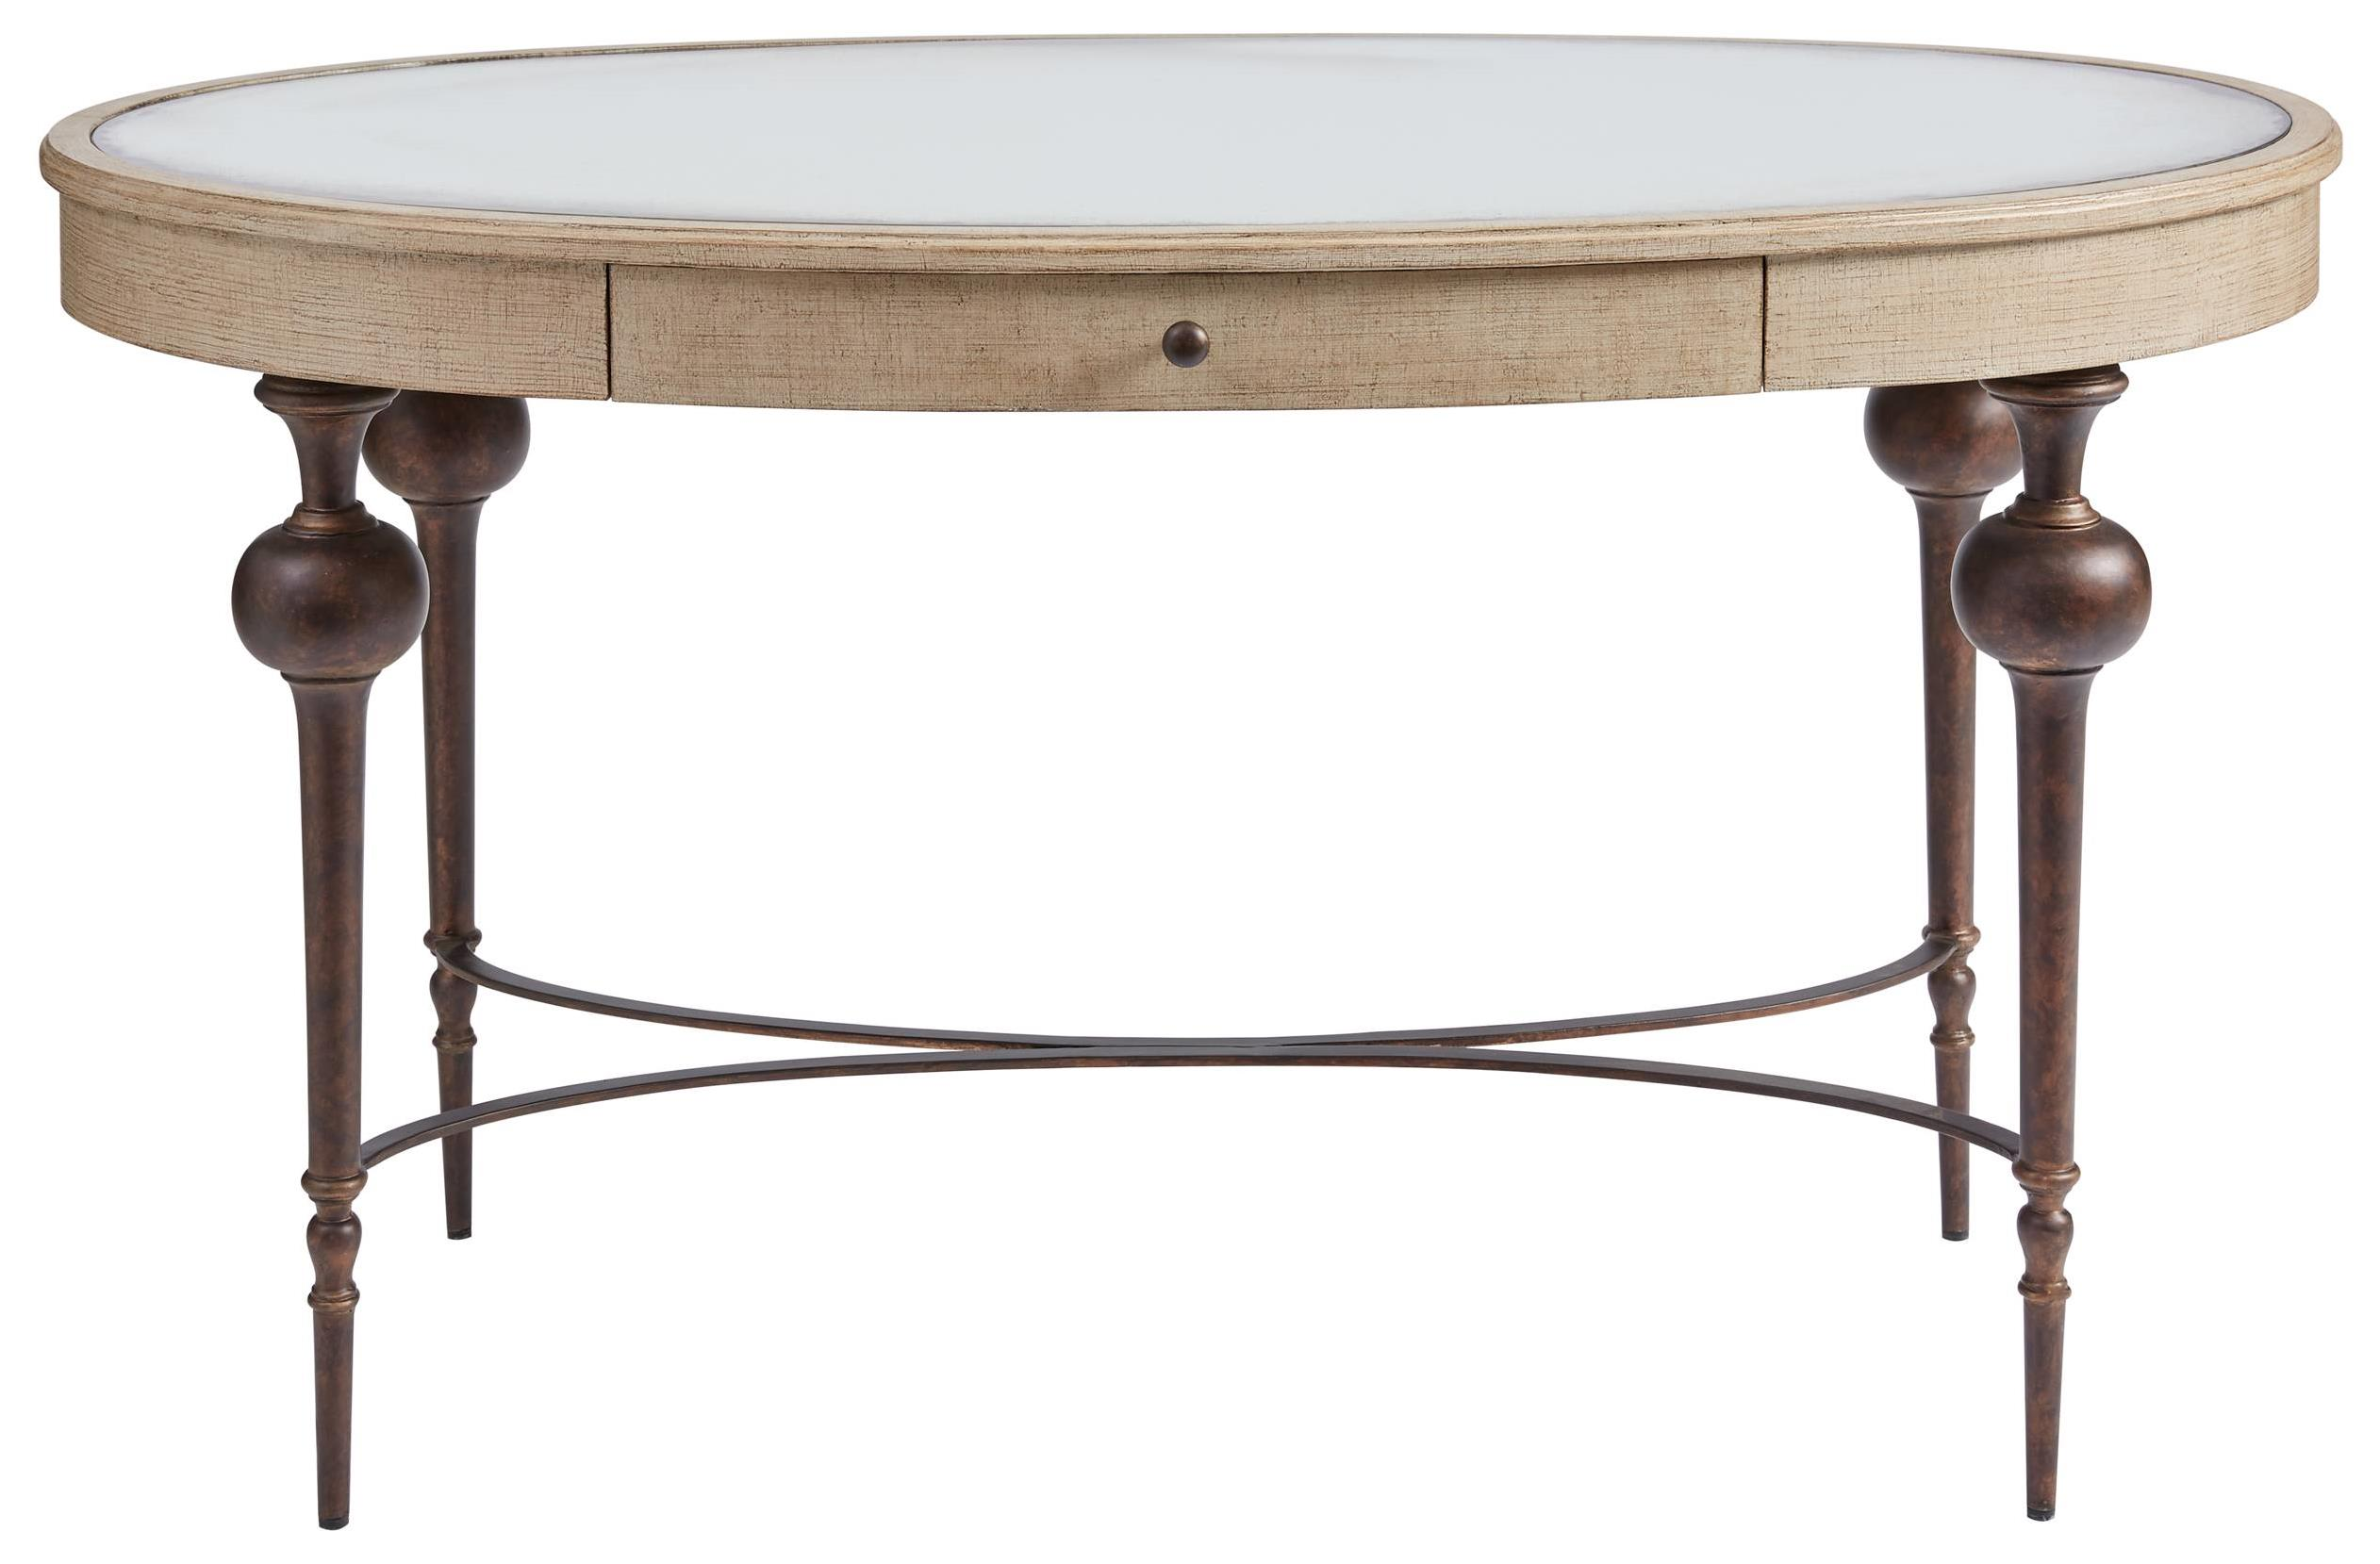 Stanley Furniture Villa Couture Adriana Writing Desk - Item Number: 510-25-04